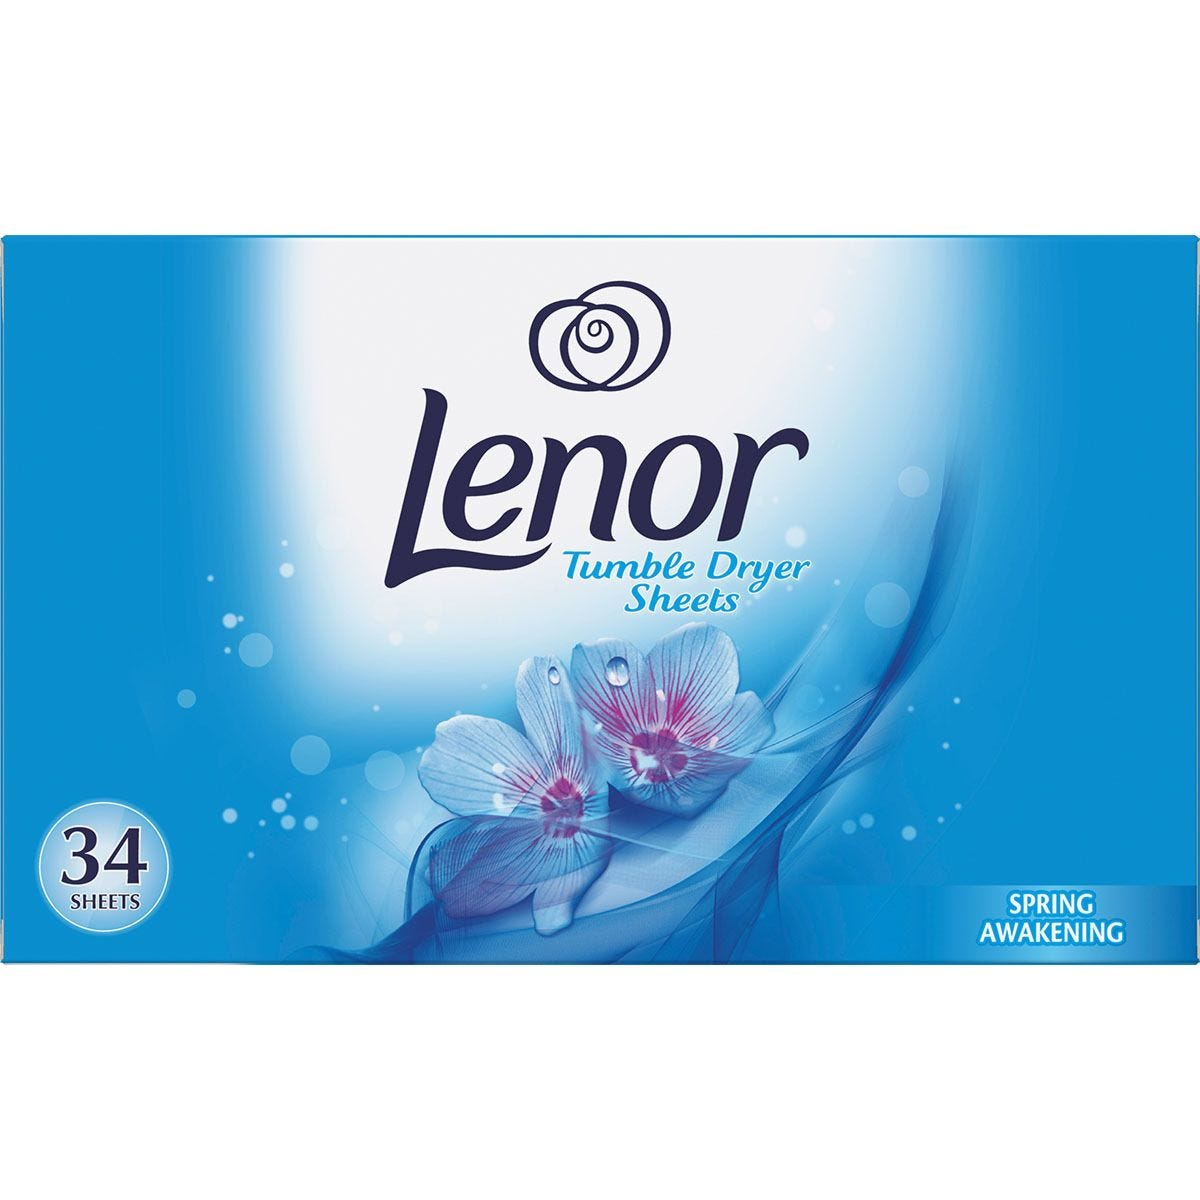 Lenor Spring Awakening Tumble Dryer Sheets - Pack of 34